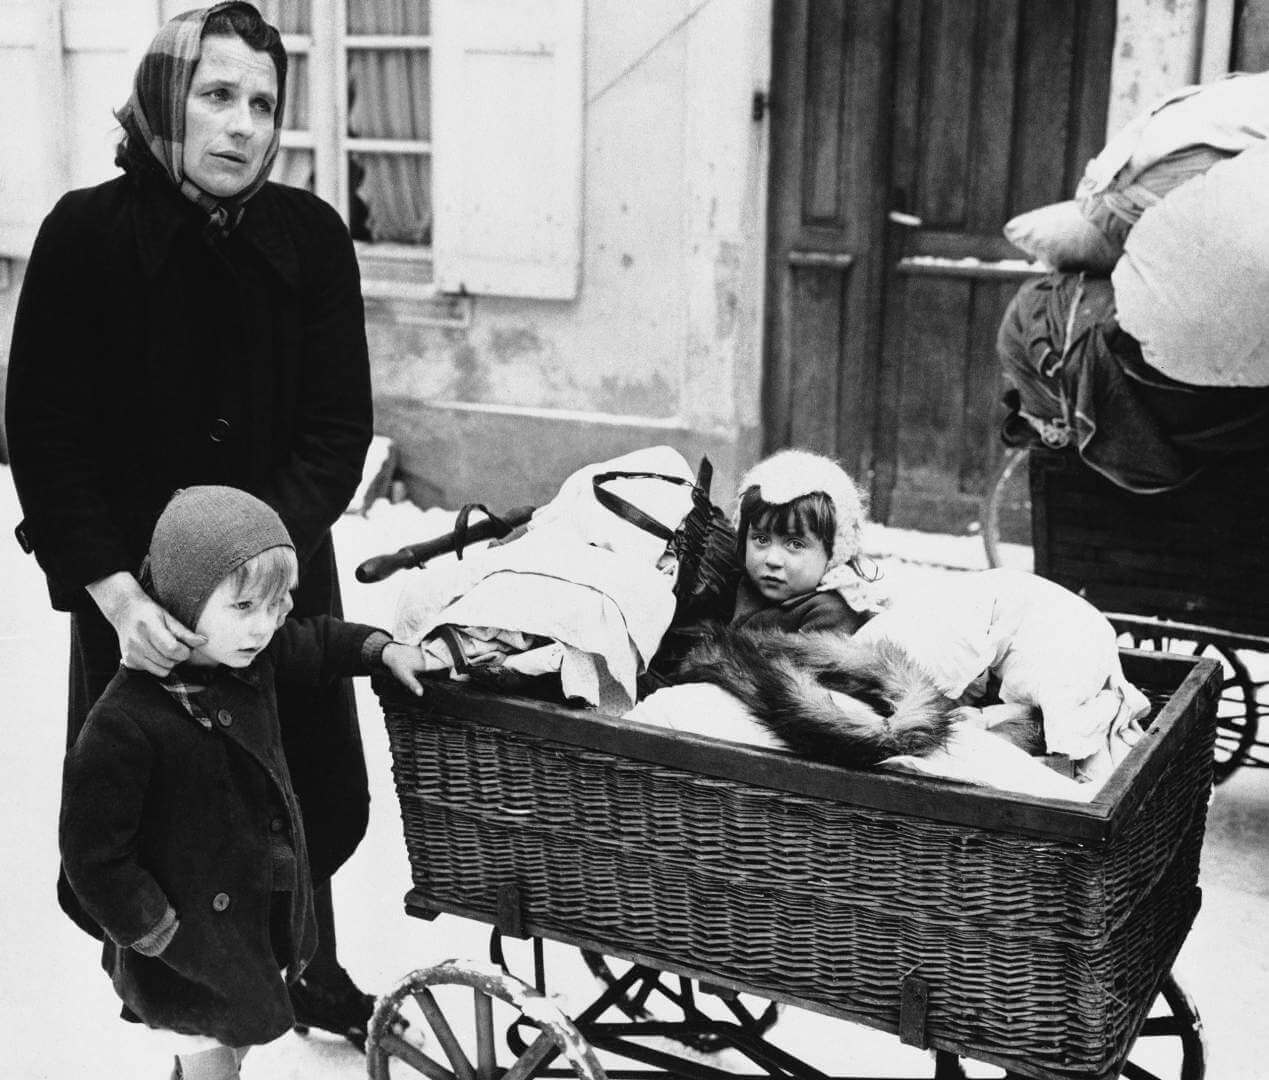 Frenchwoman with two children and belongings loaded on a baby carriage seen in Haguenau, France on Feb. 20, 1945, before they started on their long trek to a safe rear area. They are some of the refugees leaving the town because of the planned withdrawal of the 7th U.S. Army. Many civilians prefer to leave their homes and seek safety in a rear area, rather than suffer another German occupation or risk being conscripted into the German Vollksturn. (AP Photo)